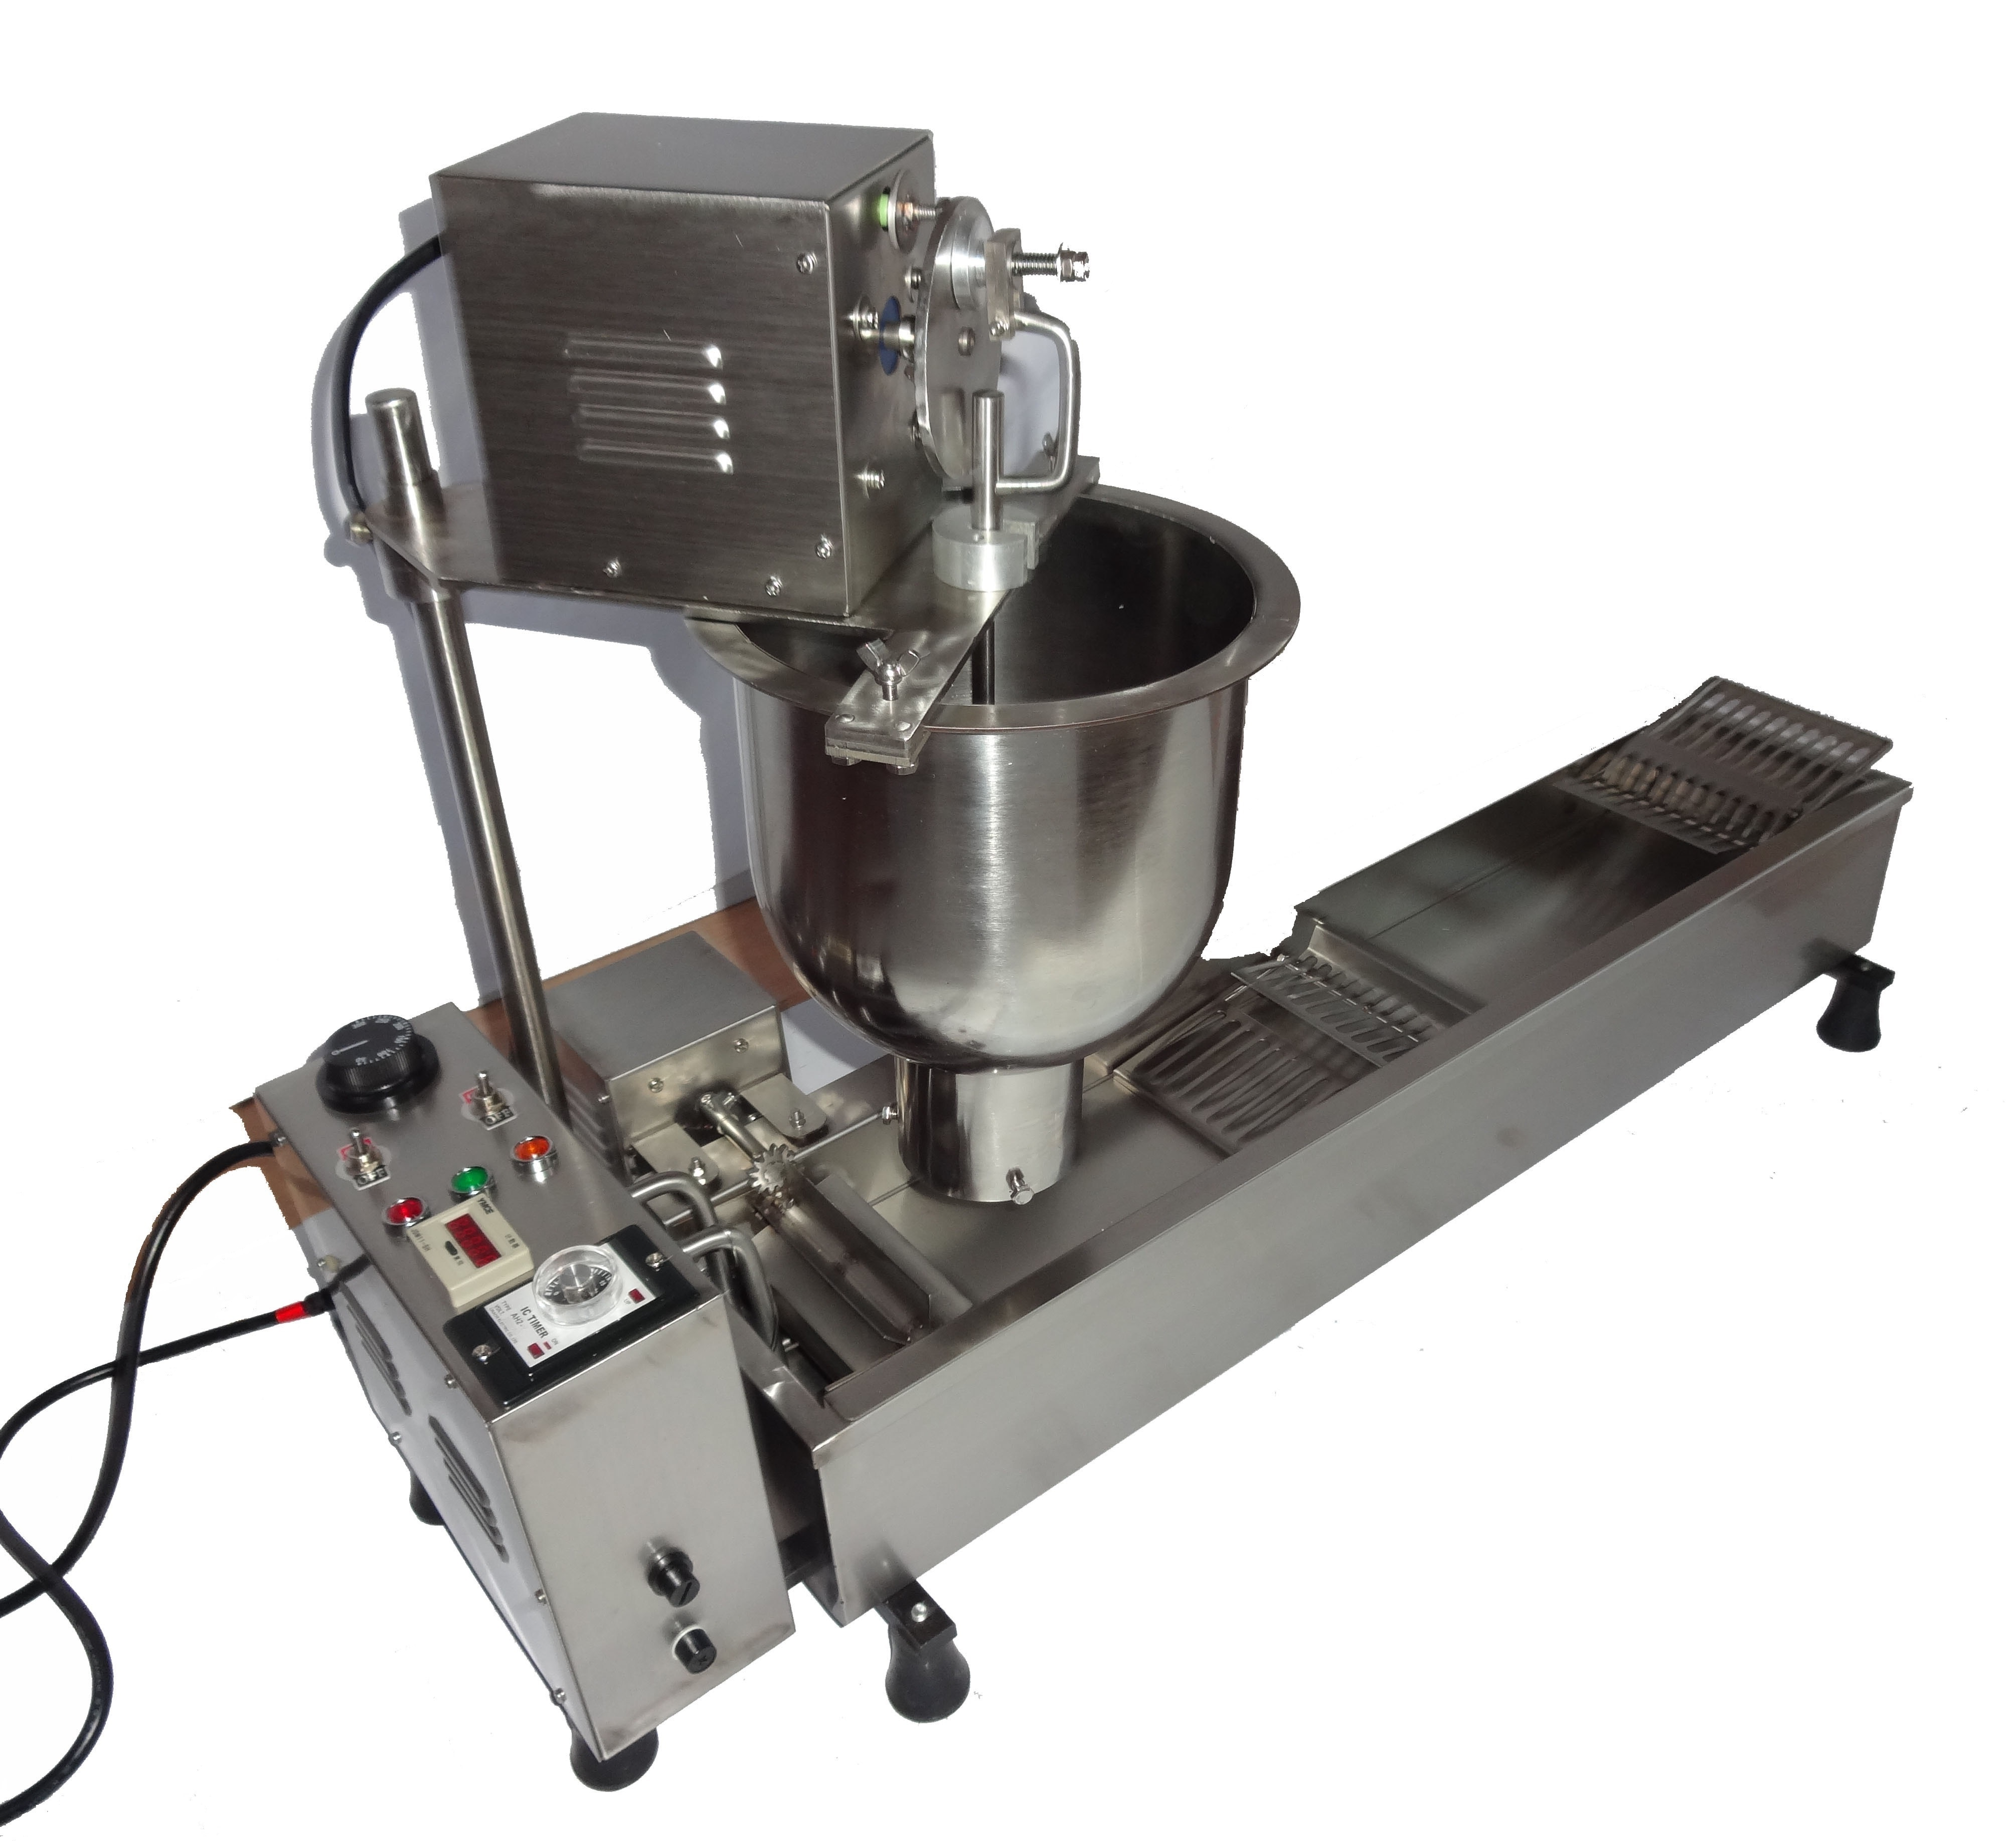 2020 Industrial single row donut machine donut maker donut making machine with fryer in USA hot sale popular 5l commercial spanish churro maker machine with 6l fryer maker churros making machine with ce in high quqlity